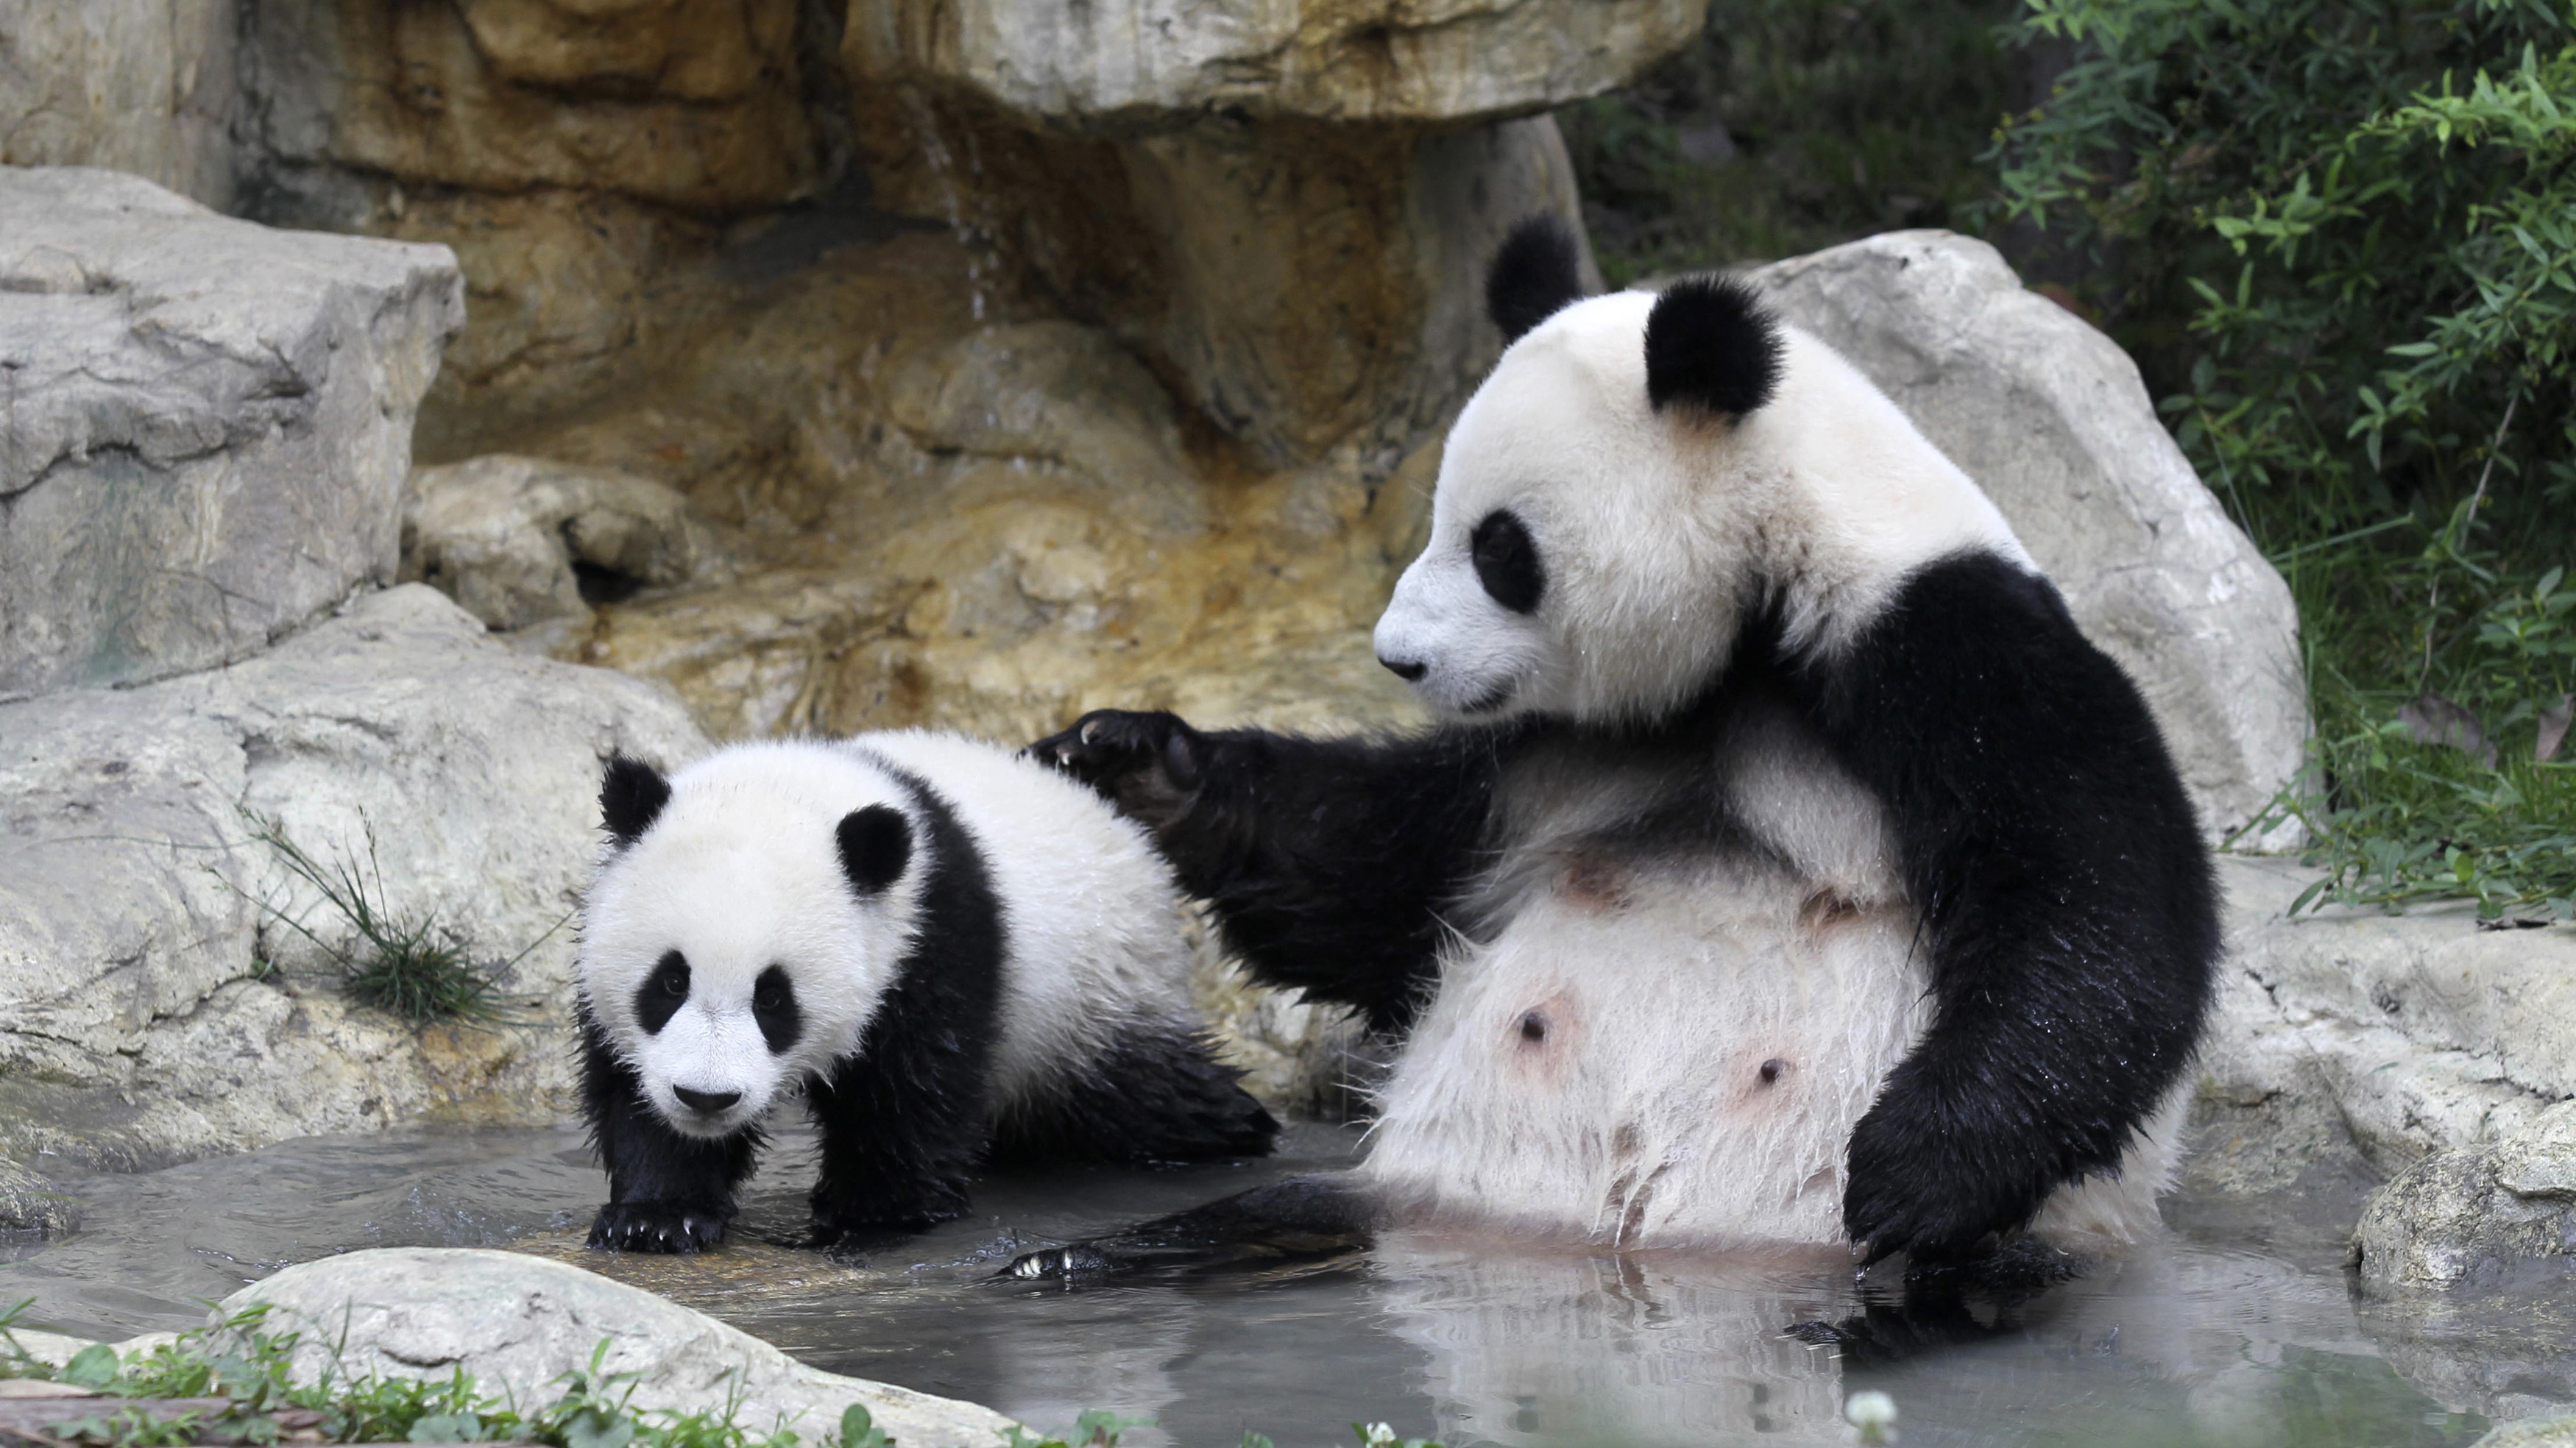 A giant panda cub (L) and its mother play by a pond as they take a bath at the Chengdu Research Base of Giant Panda Breeding in Chengdu, Sichuan province May 14, 2013. Picture taken May 14, 2013. REUTERS/China Daily (CHINA - Tags: ANIMALS SOCIETY) CHINA OUT. NO COMMERCIAL OR EDITORIAL SALES IN CHINA - GM1E95F10JT01